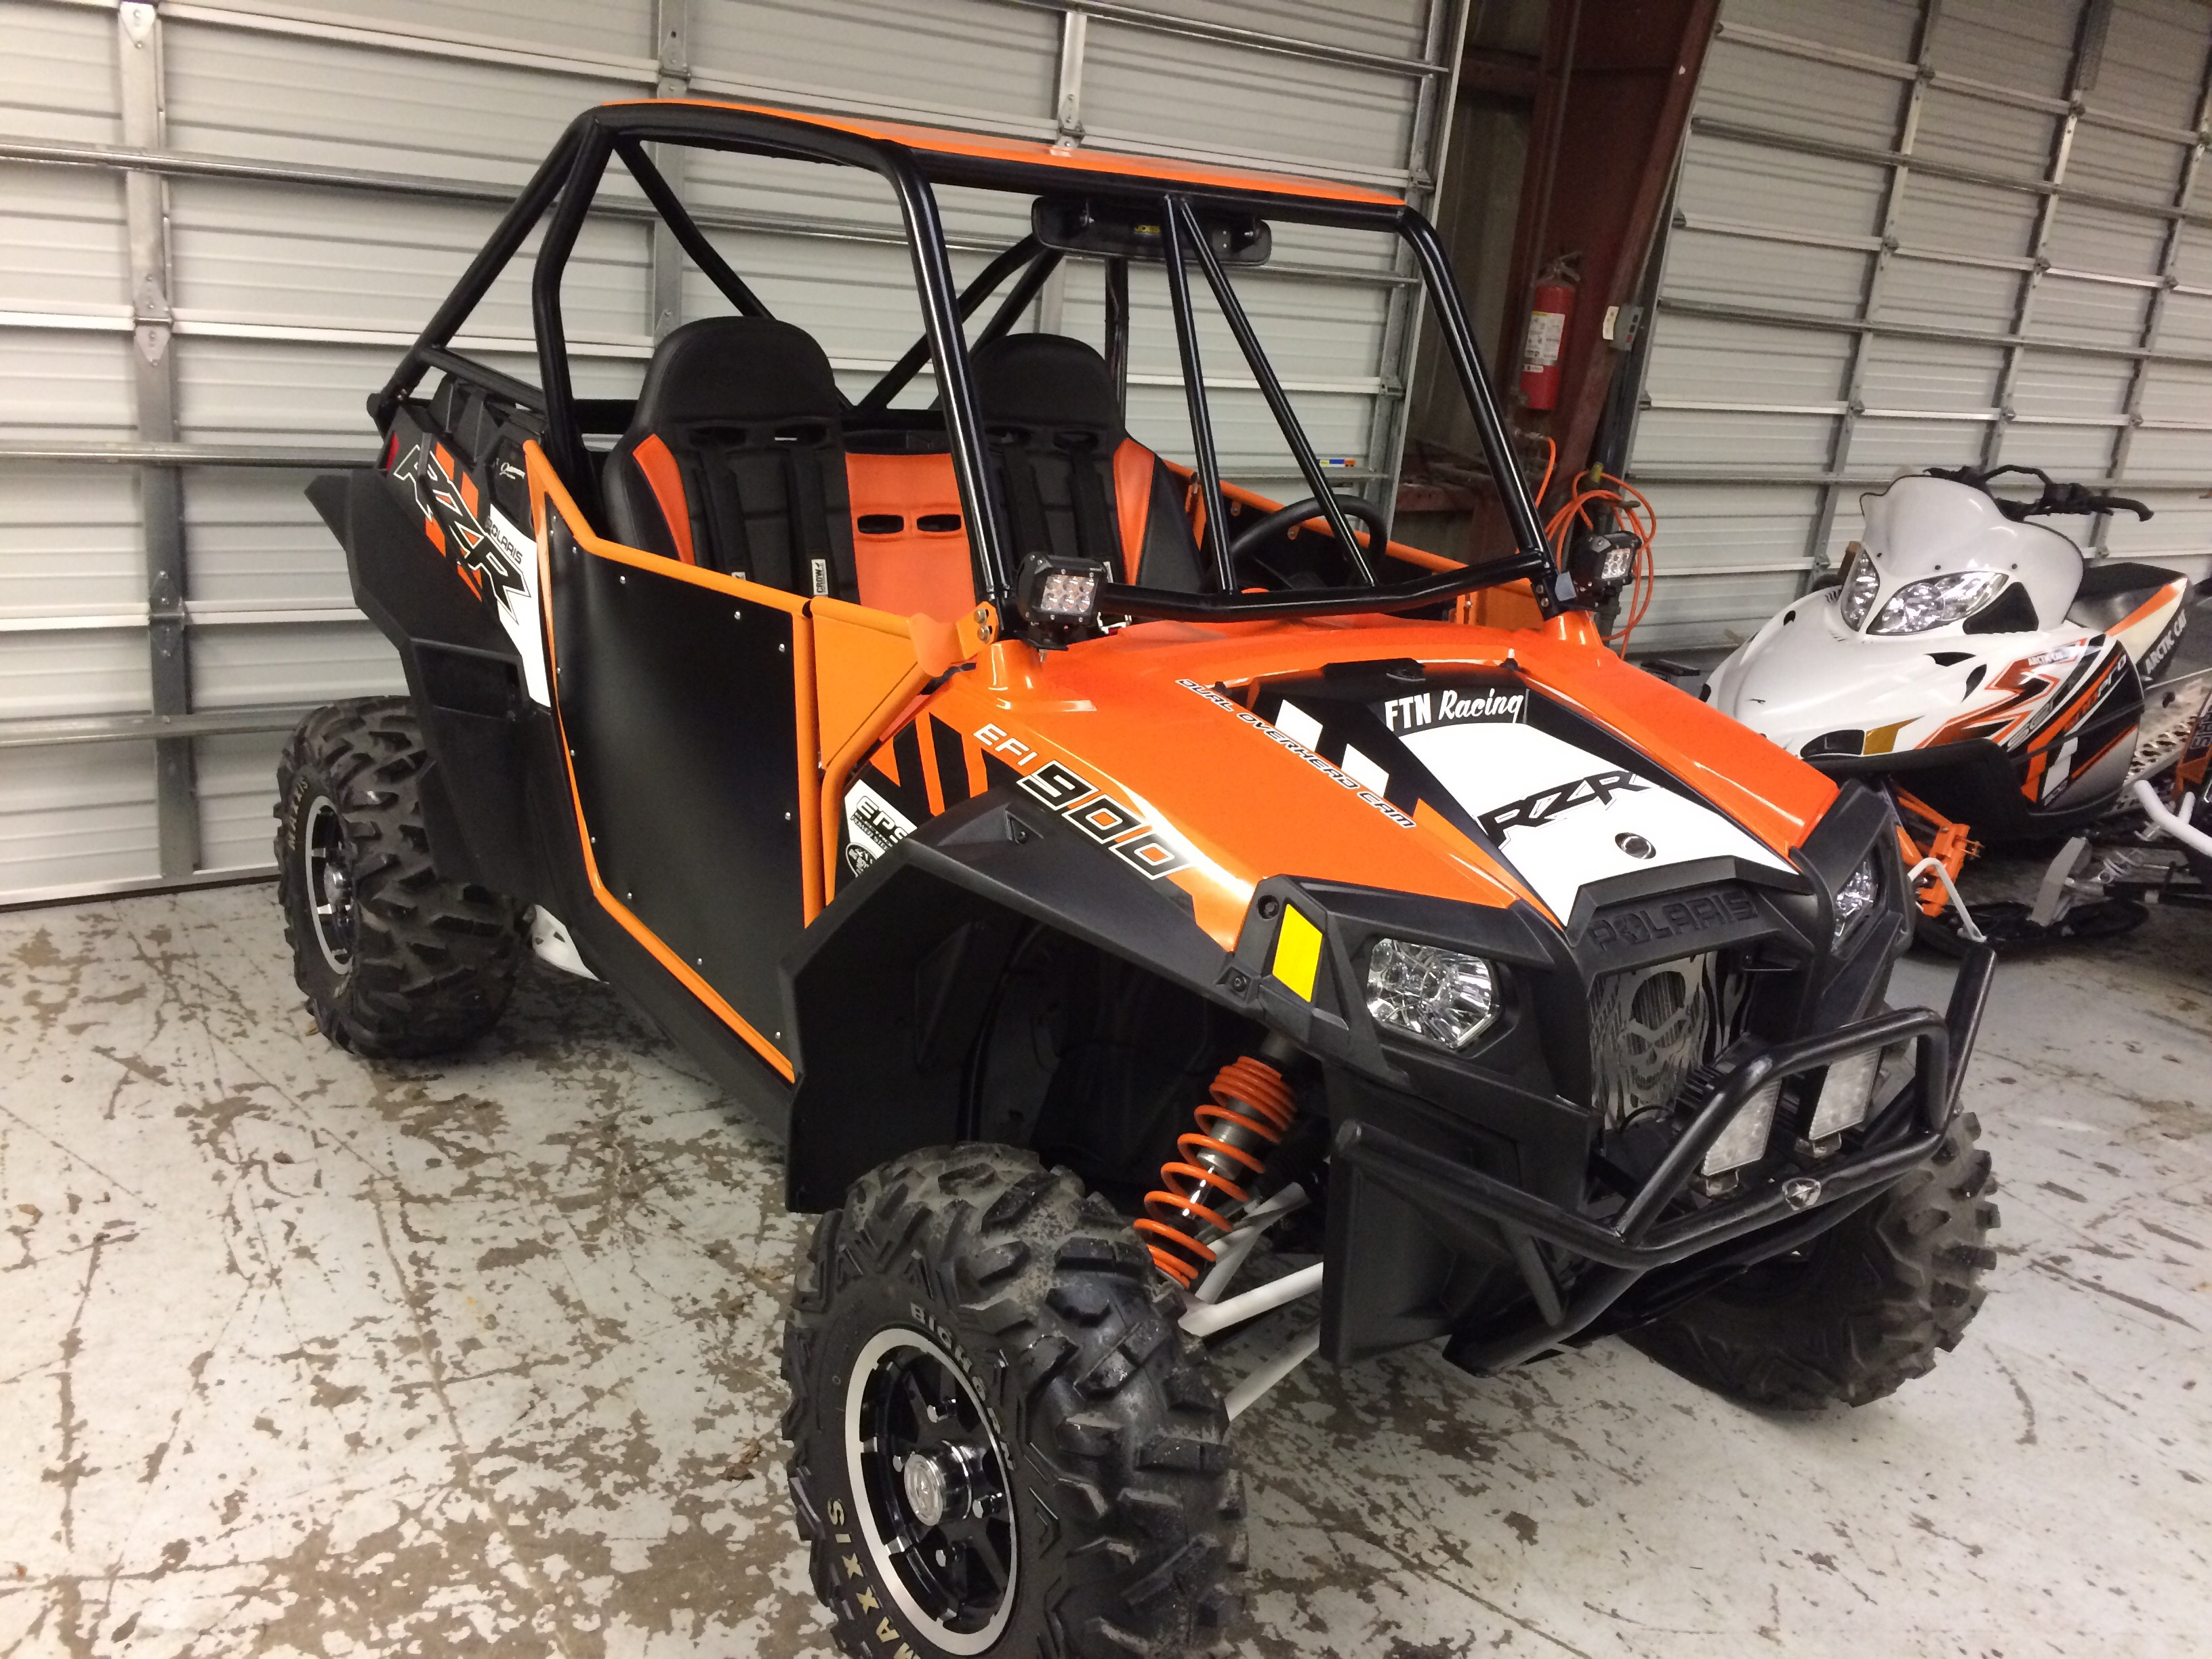 2014 Polaris Rzr 900 XP 1400 Miles MINT $11,700 SOLD | All